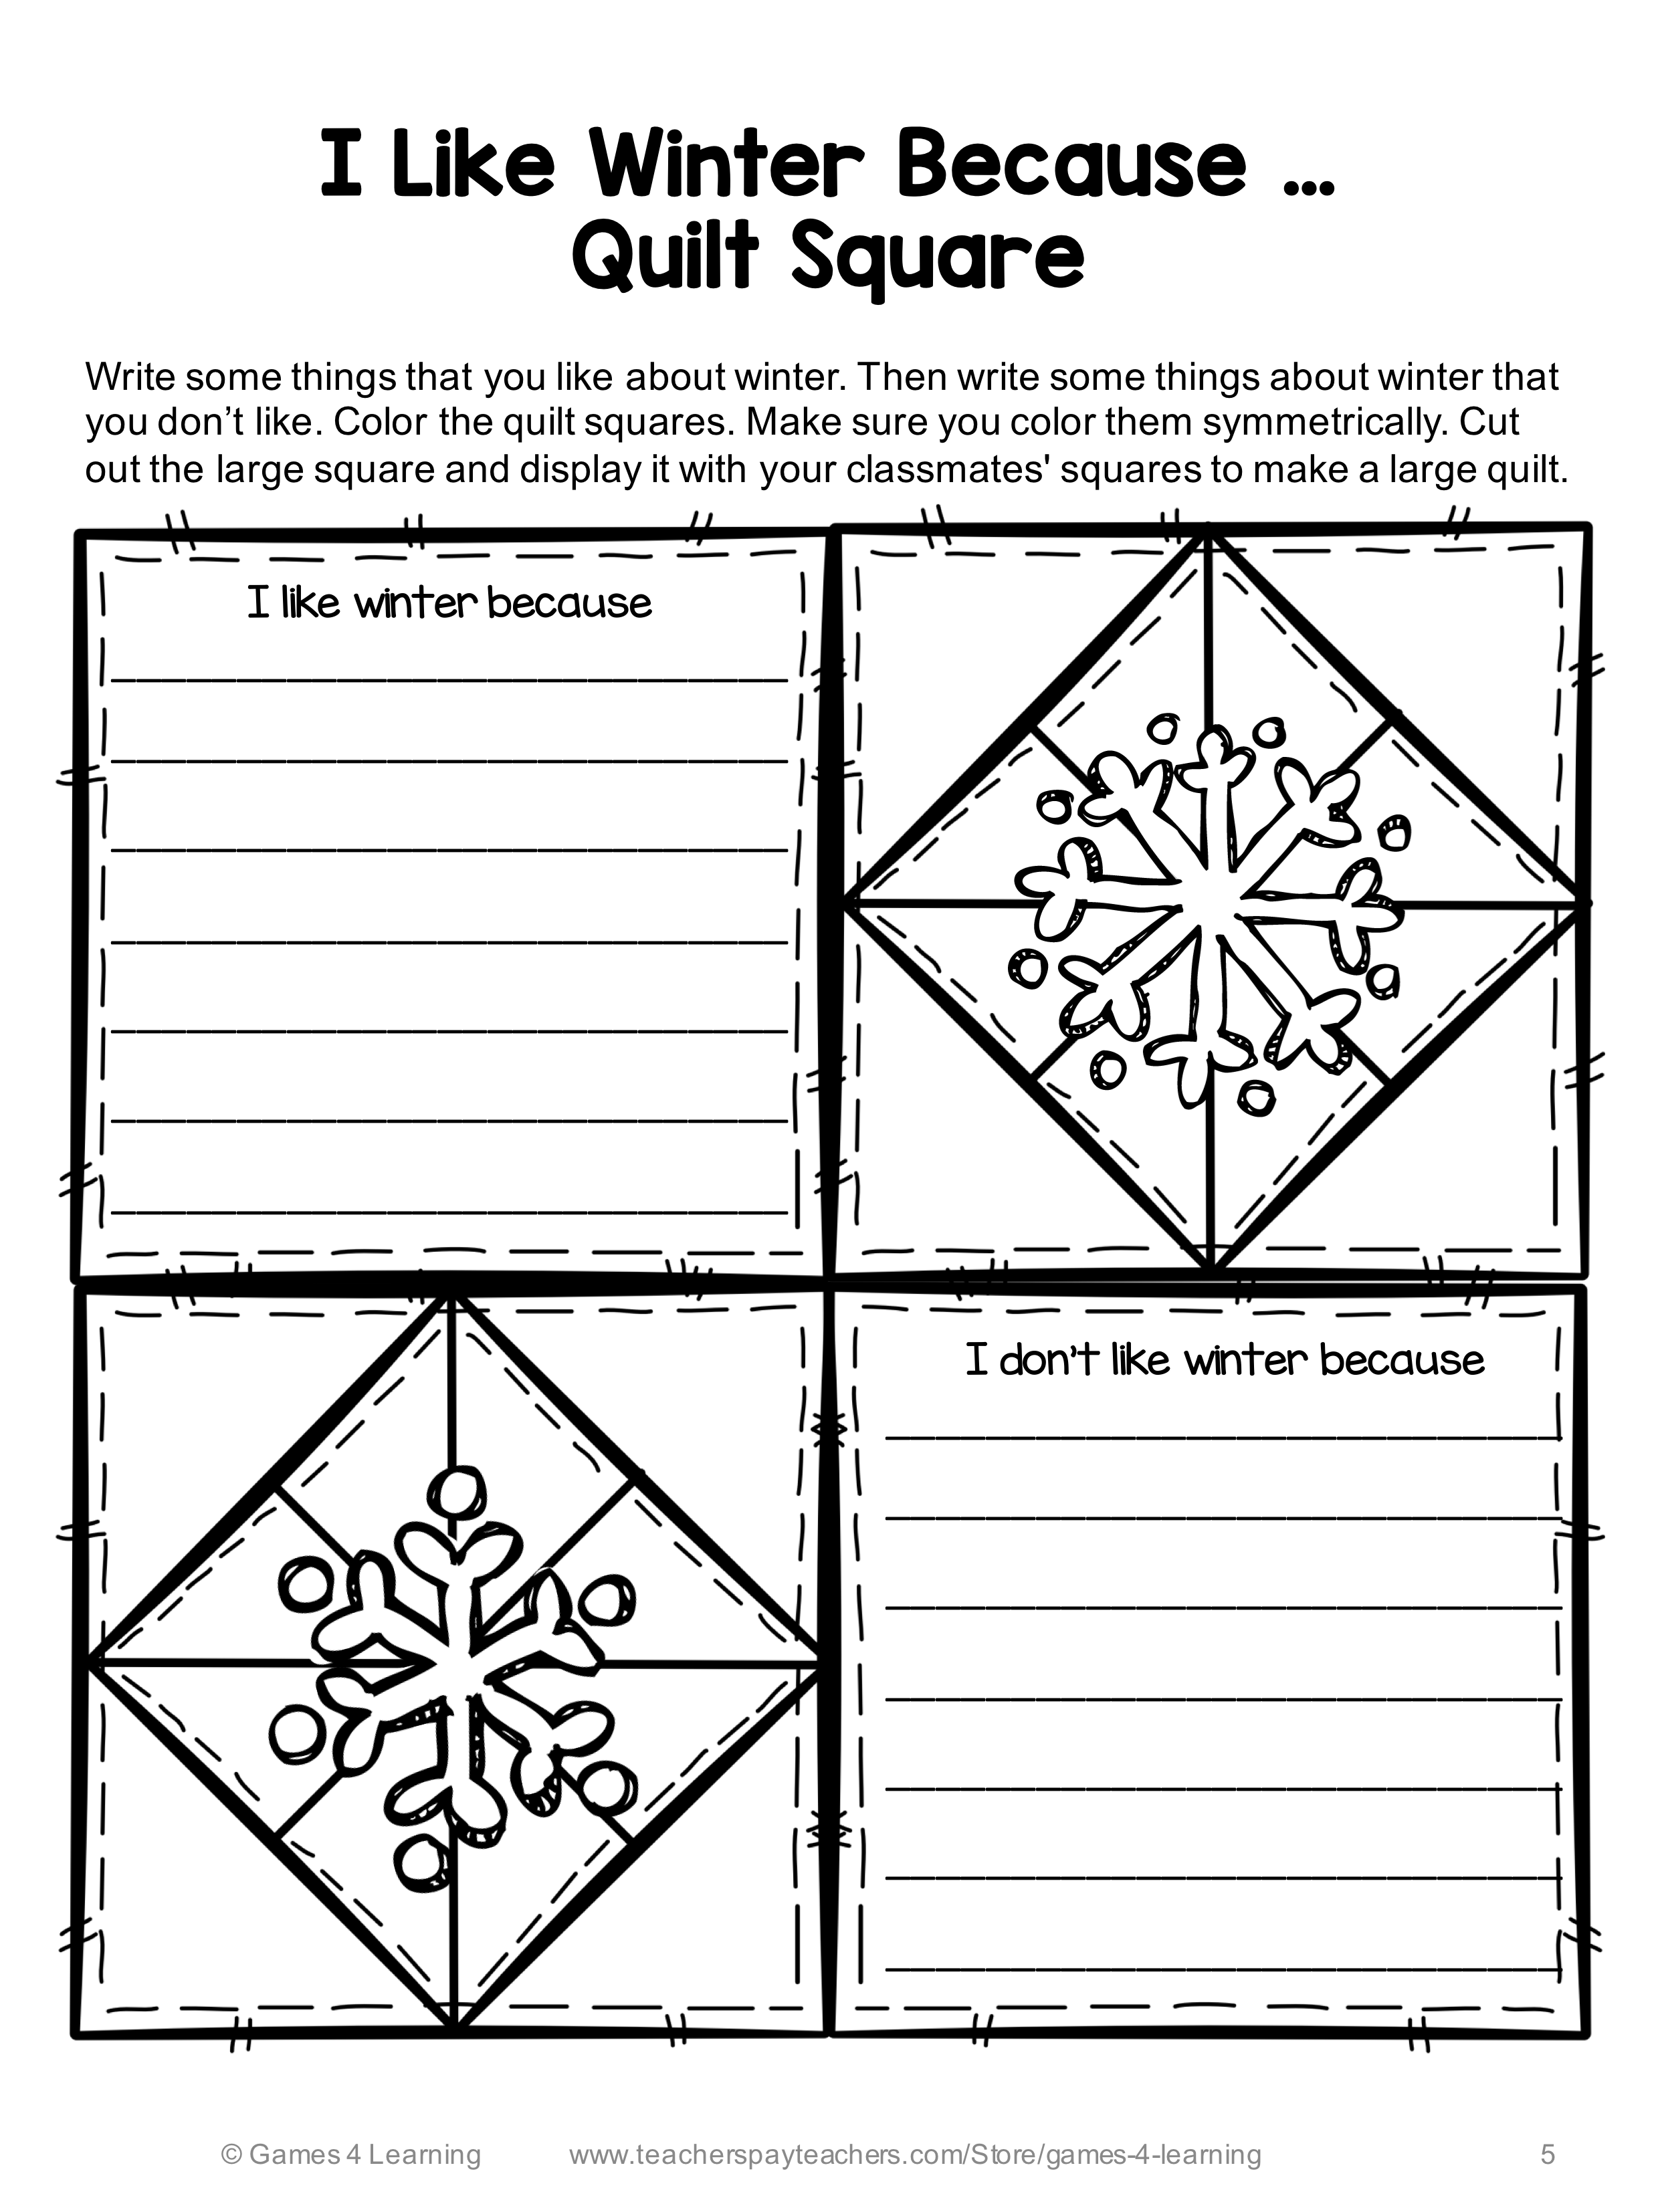 Winter Writing Prompts Quilt How To Build A Snowman If I